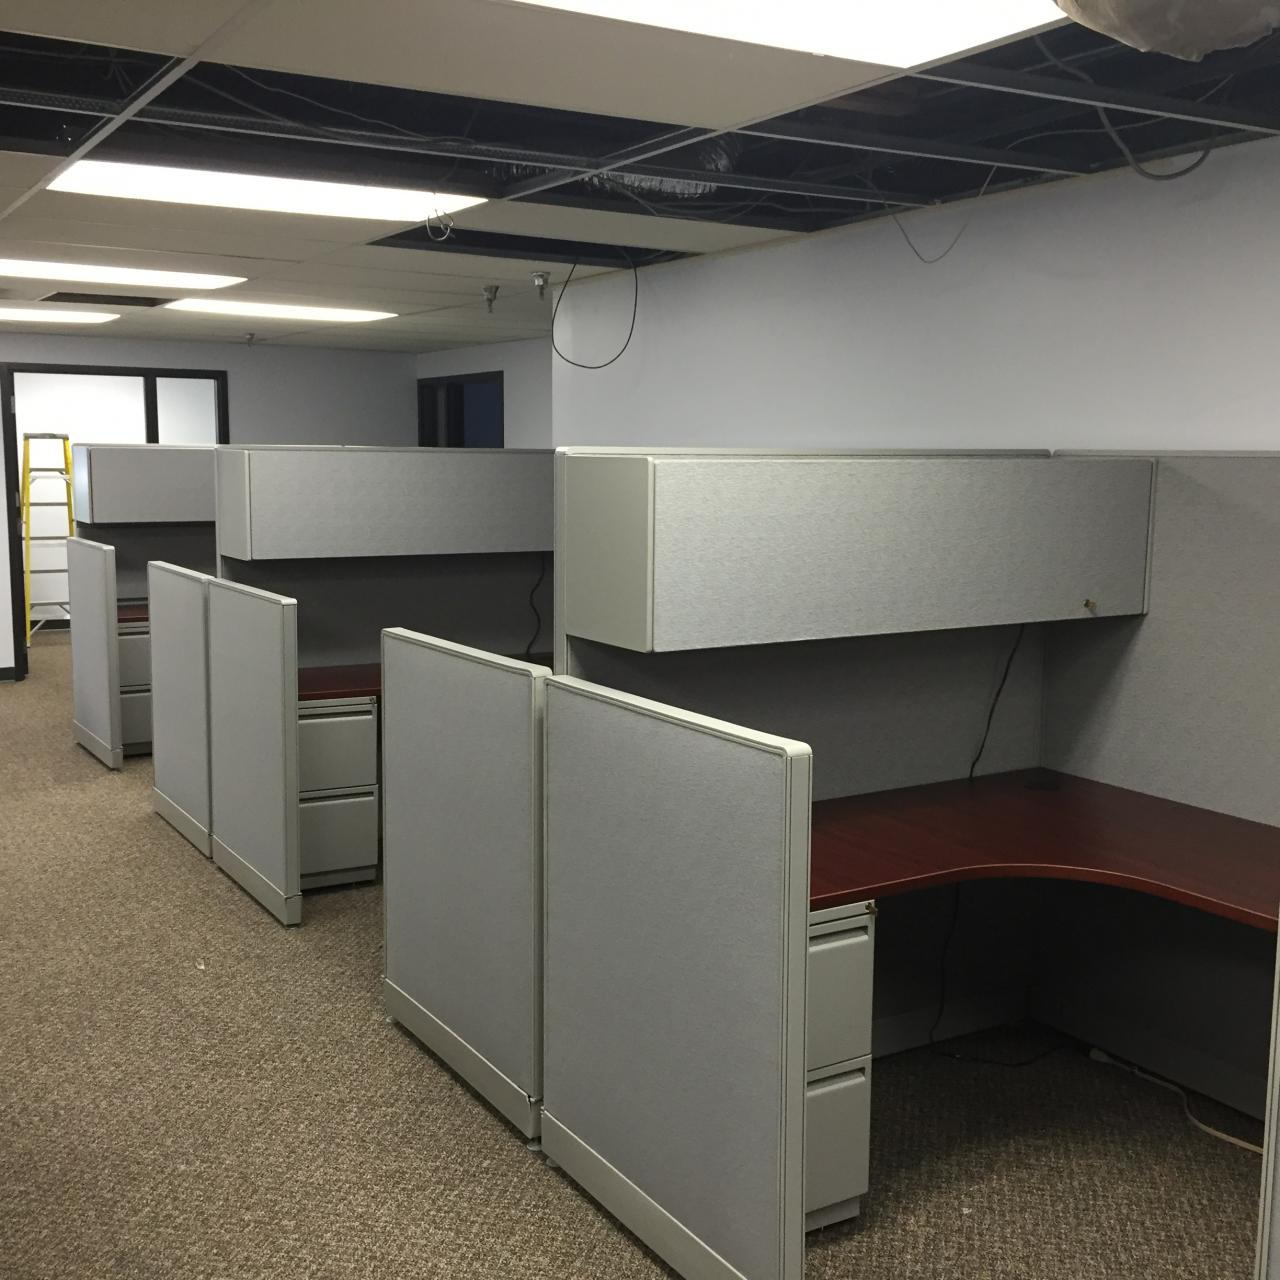 Office Furniture Installation Chicago Dba Cube Install Inc Projects # Haworth Muebles Oficina